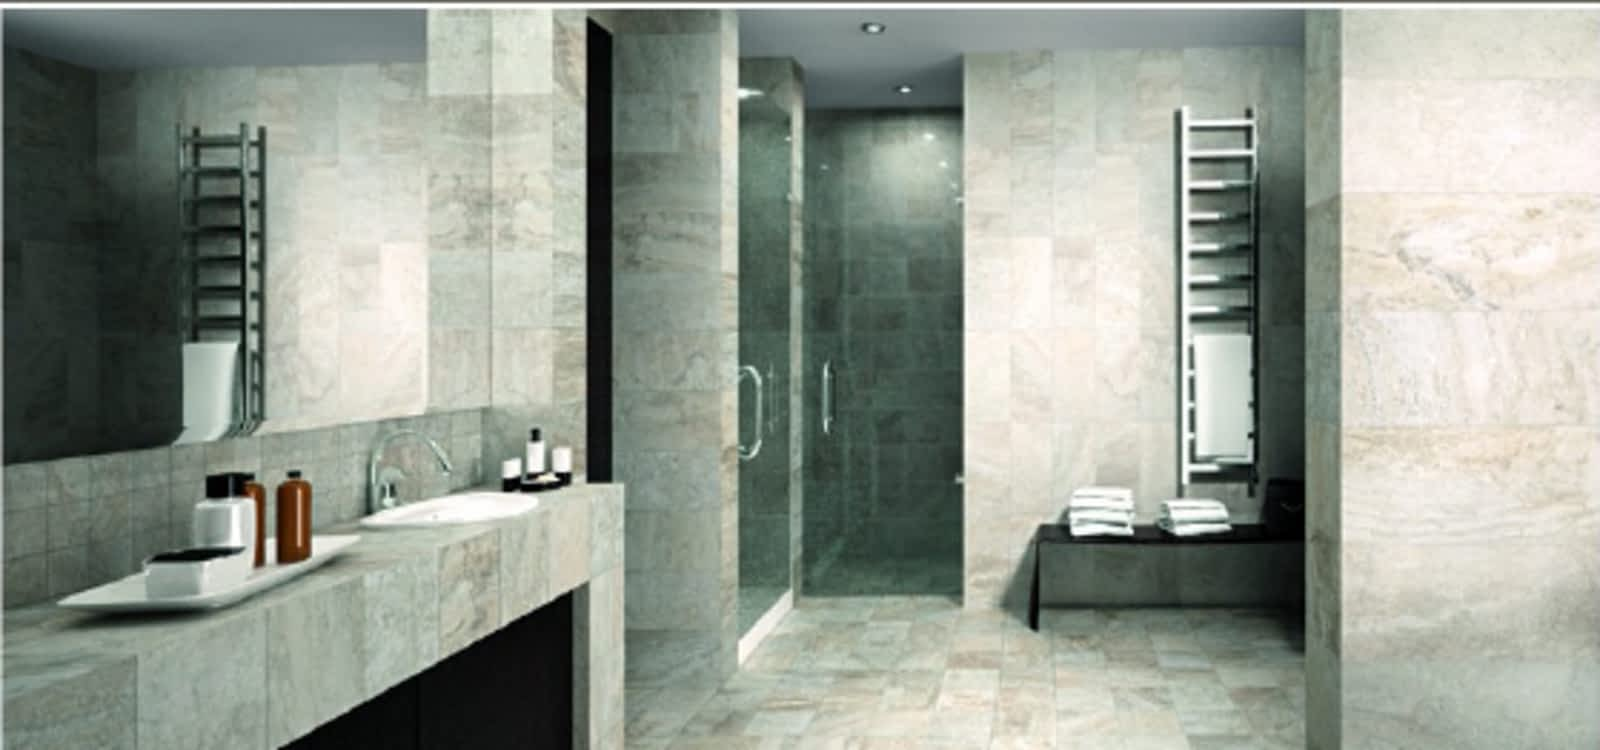 Torino tile flooring images home flooring design torino tile stone inc opening hours 5 3 st marys rd torino tile stone inc opening dailygadgetfo Image collections